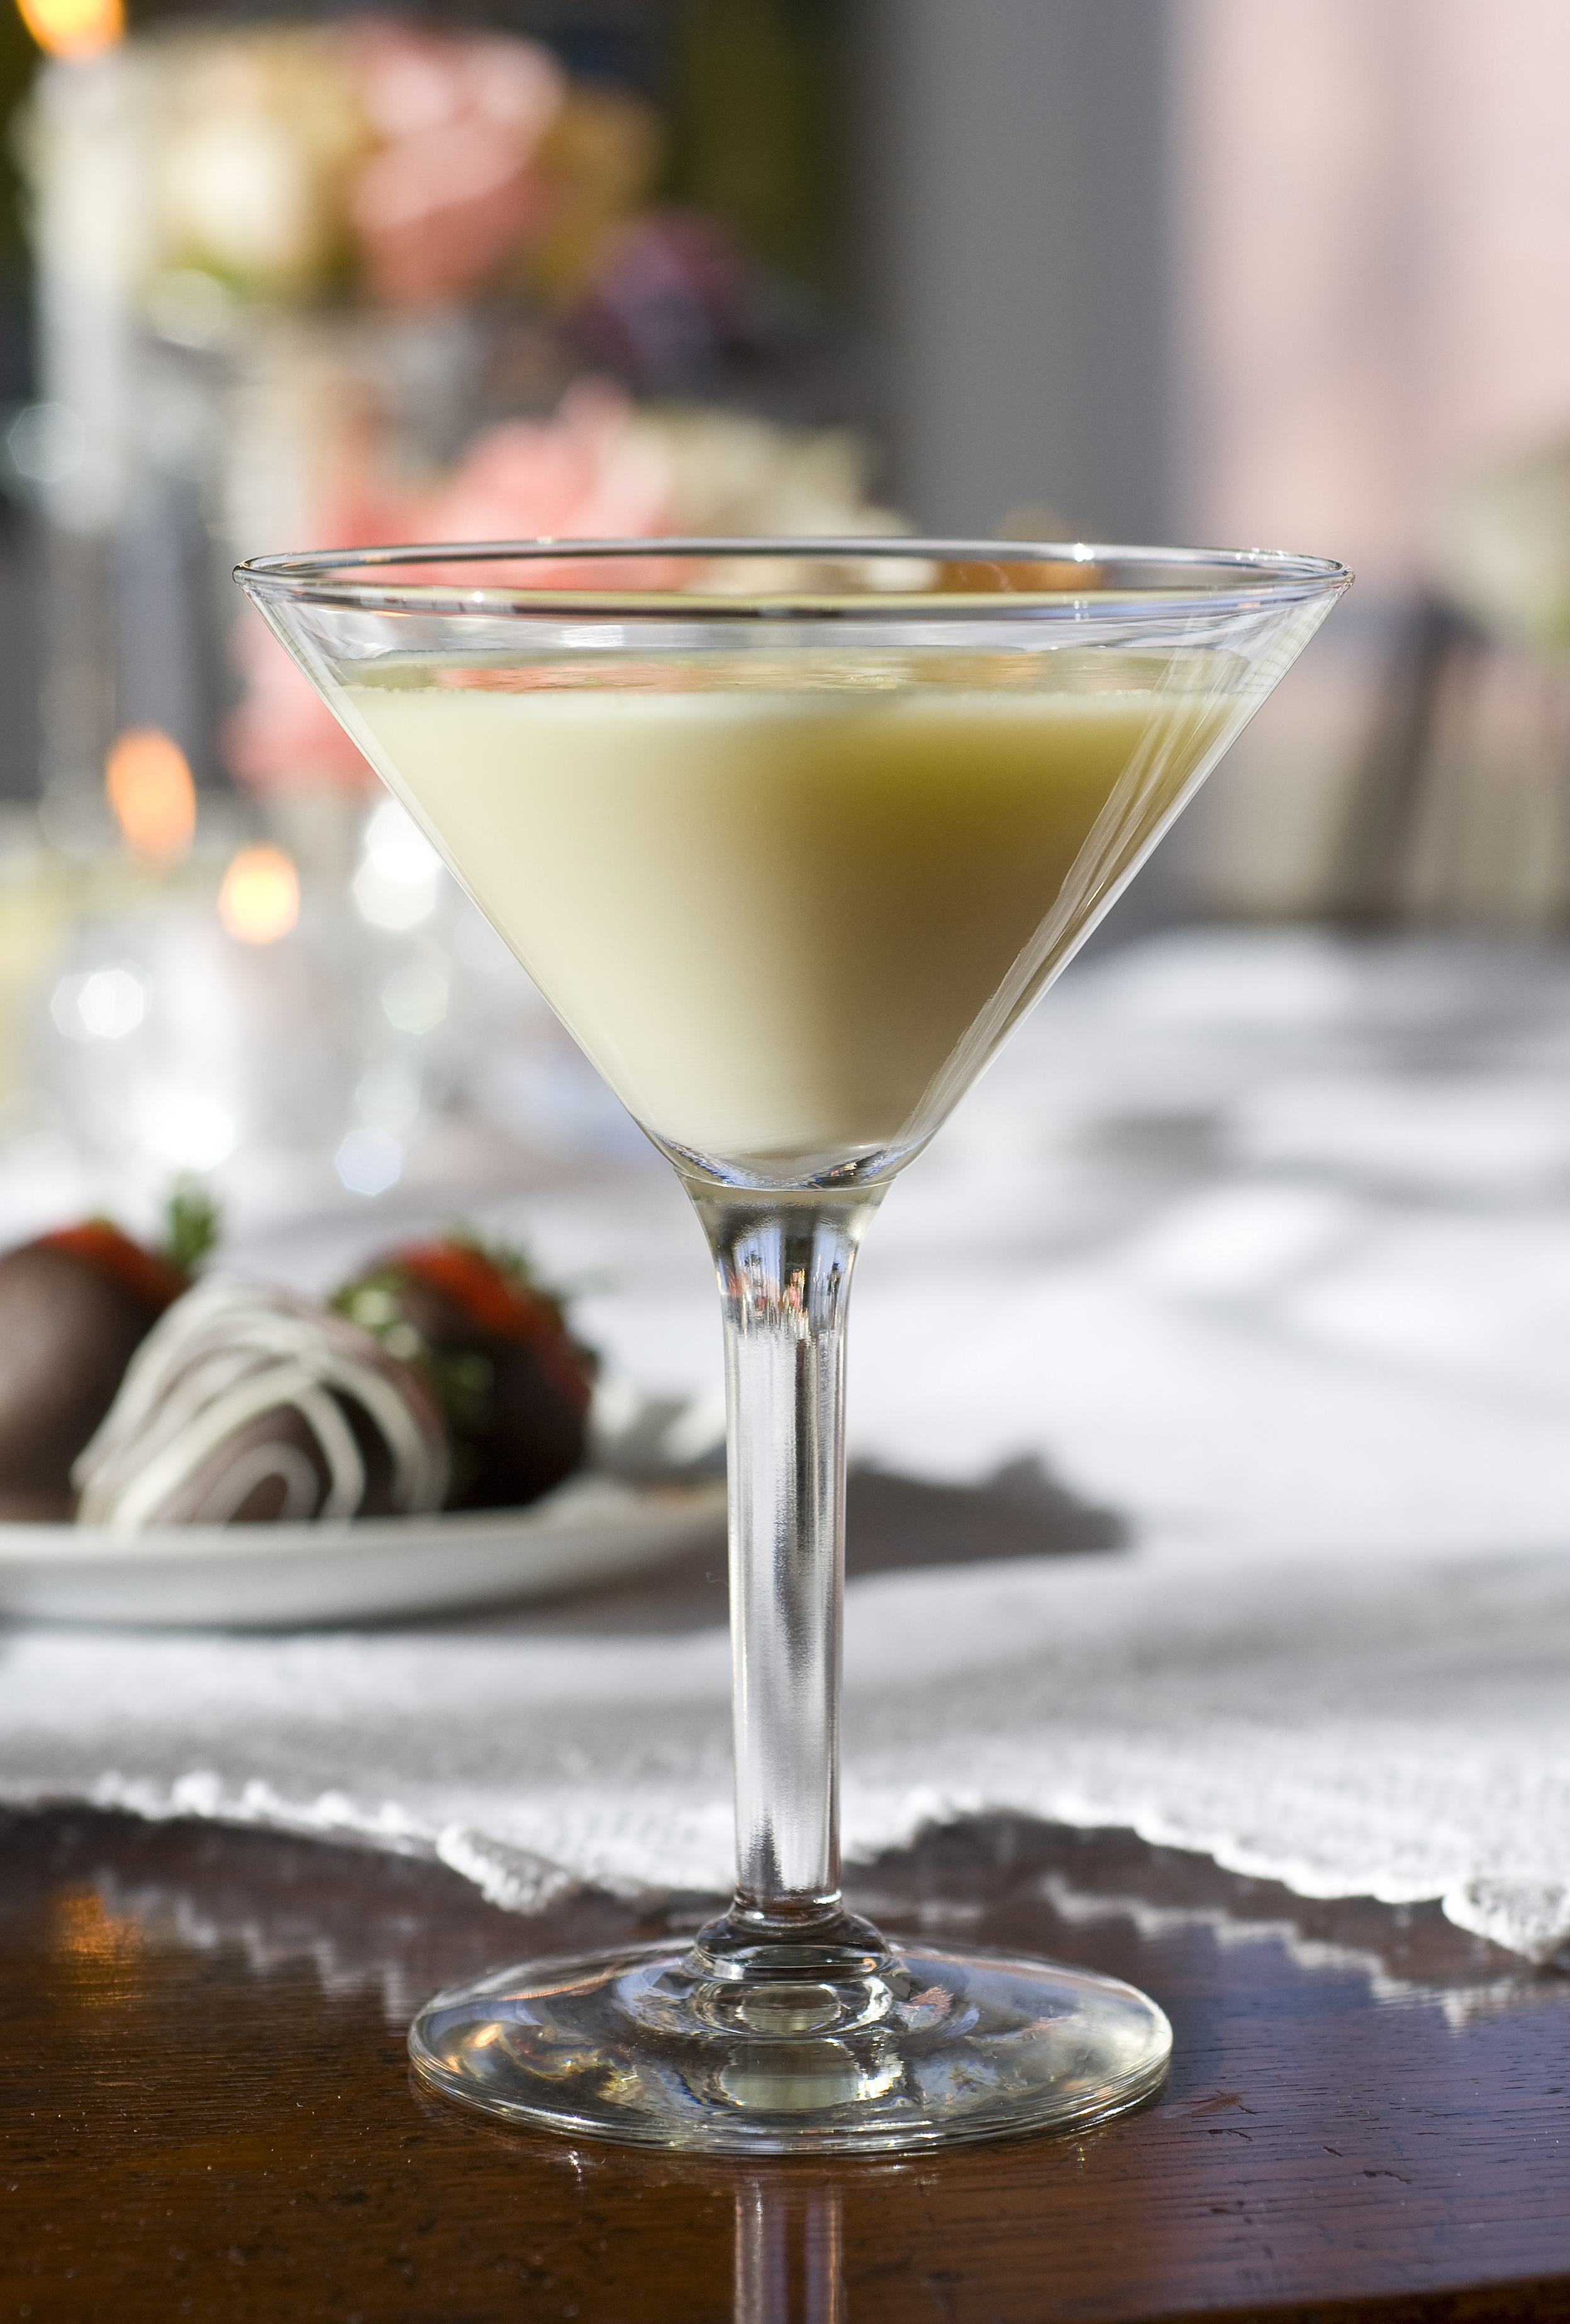 Decadent, rich, over the top, dangerously delicious! Rich velvety white chocolate concocted into a sinful cocktail. Chocolate lovers will swoon over this incredible cocktail. Perfect as a romantic before-dinner drink.